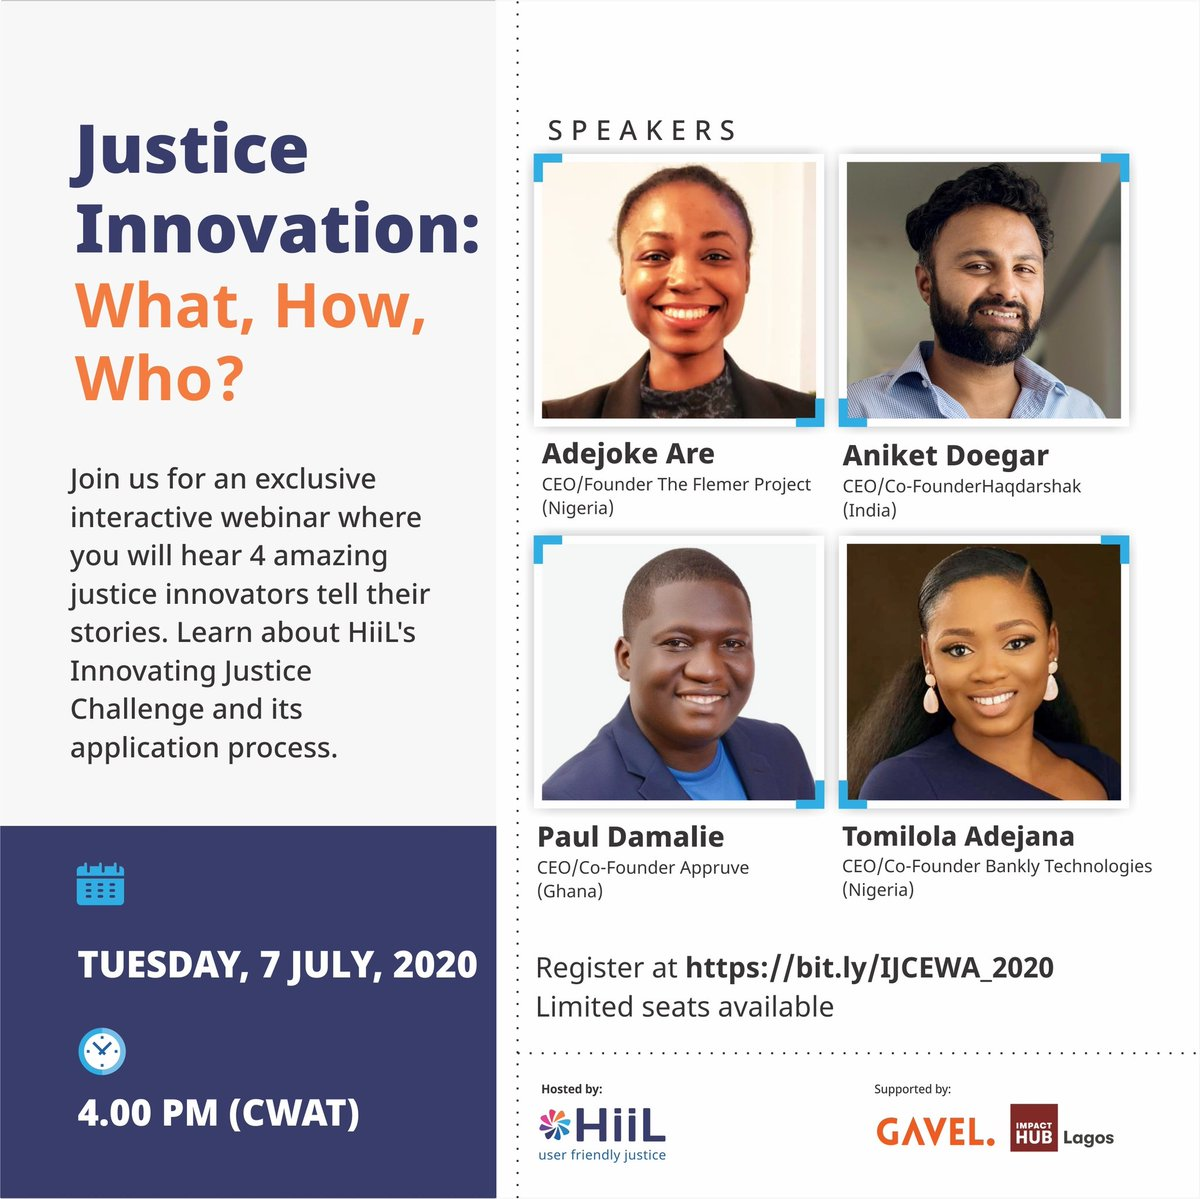 Register for an exclusive webinar on the Innovating Justice Challenge and its application process. Its happening on Tuesday 7 July by 4pm.  Register here: https://t.co/8bLZchG6Pd  #justinnovate20 #InnovatingJusticeChallenge2020 https://t.co/g26kg95NTf